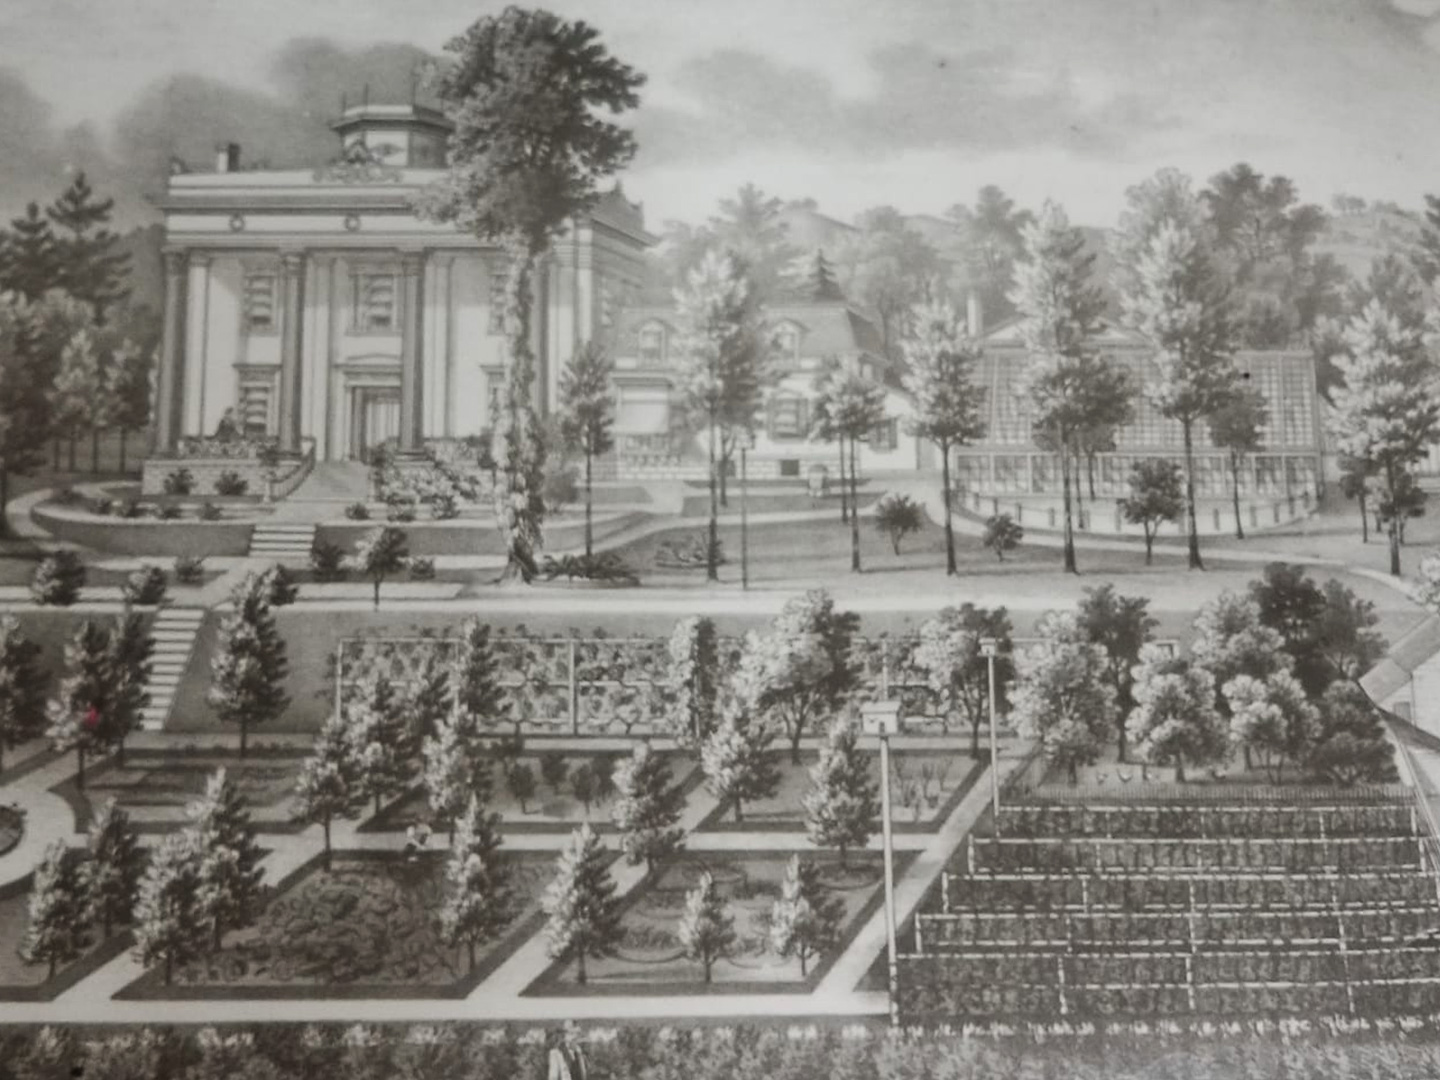 Illustration of Lanier Mansion Grounds